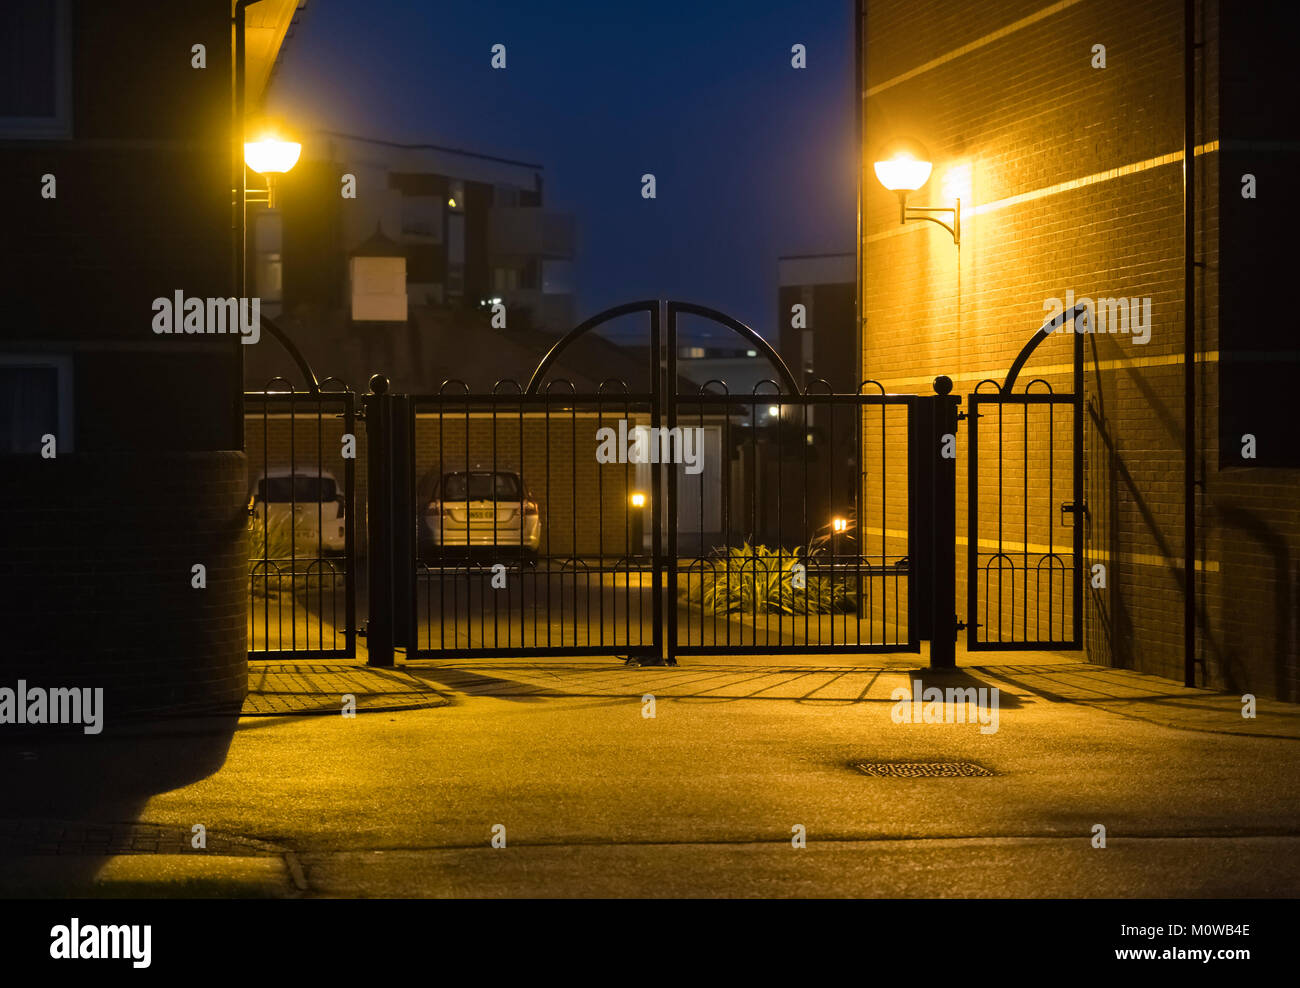 Gates and movement sensitive security lights at the entrance to a private car park in the UK. - Stock Image